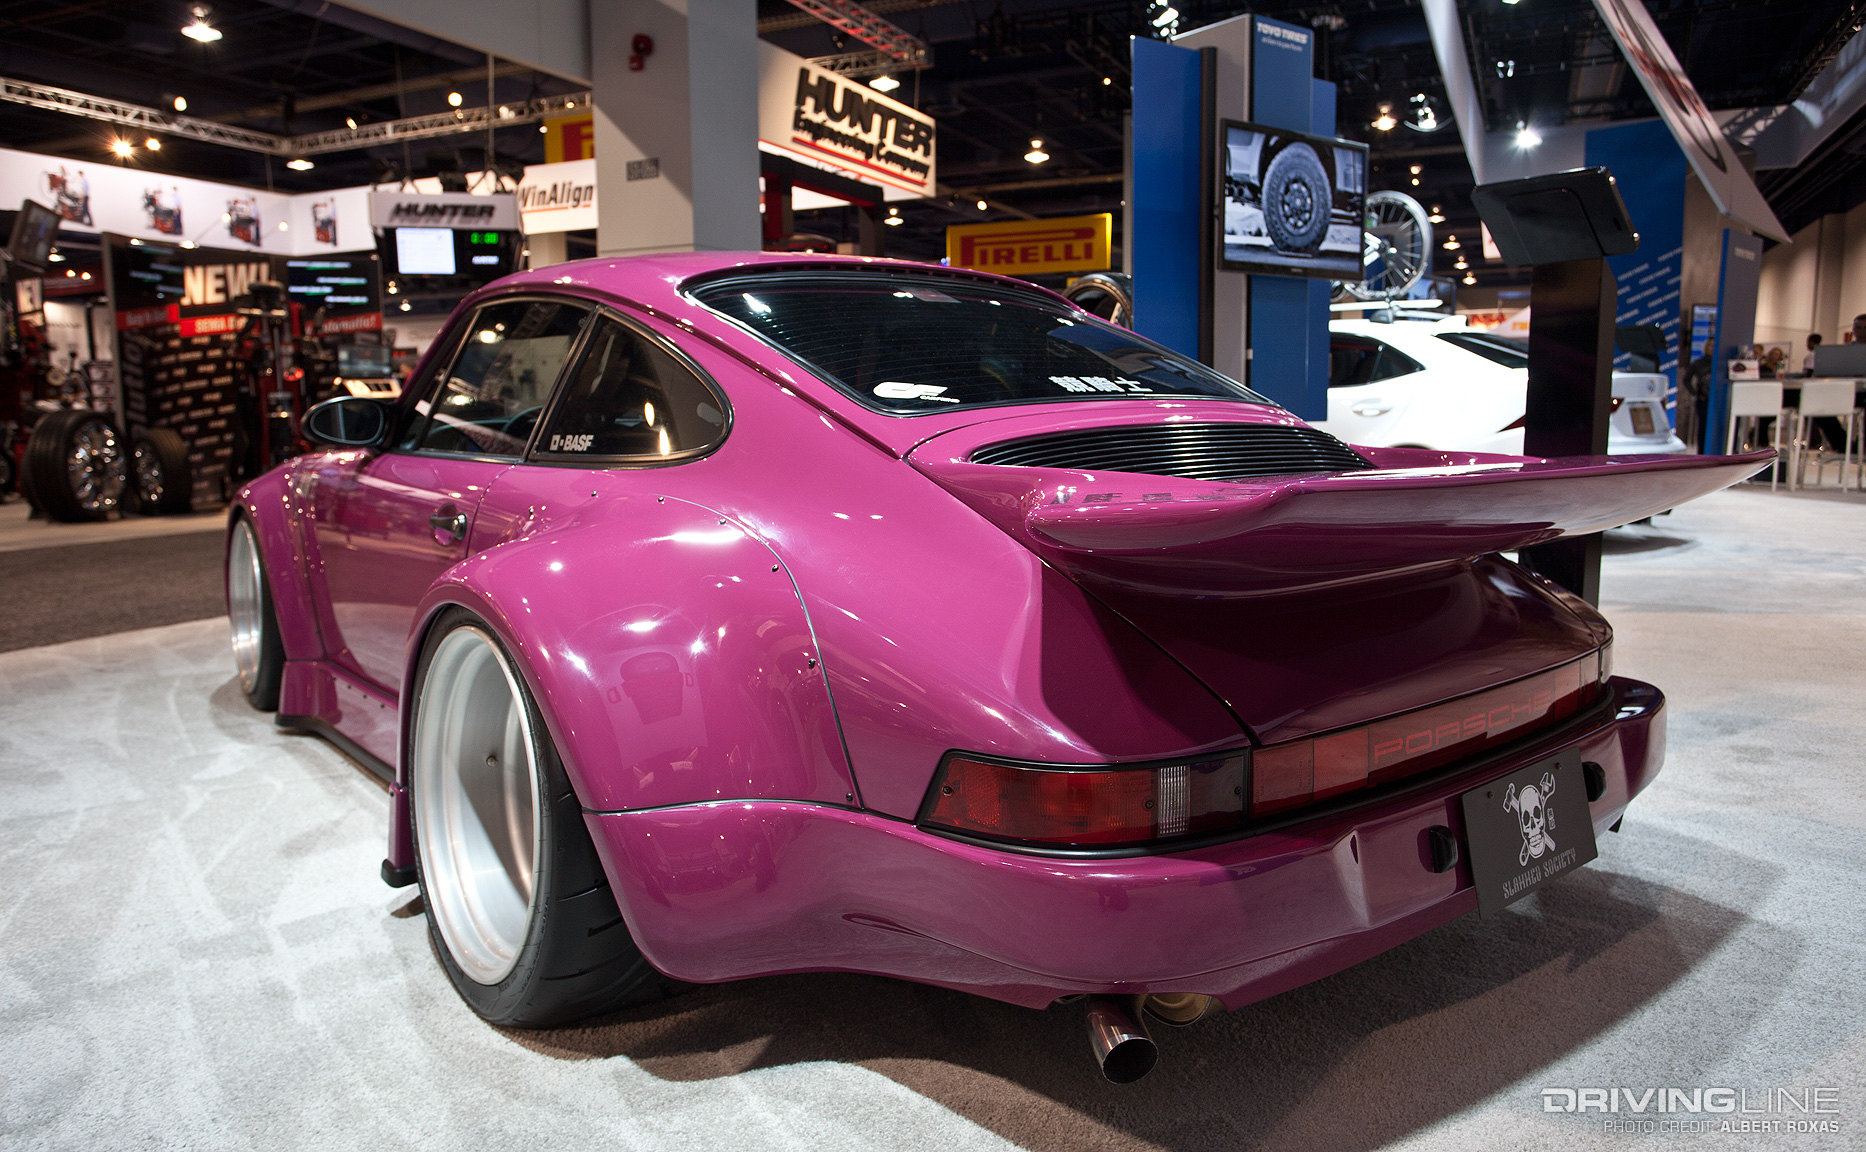 The Cost (and Rewards) of Building an RWB | DrivingLine